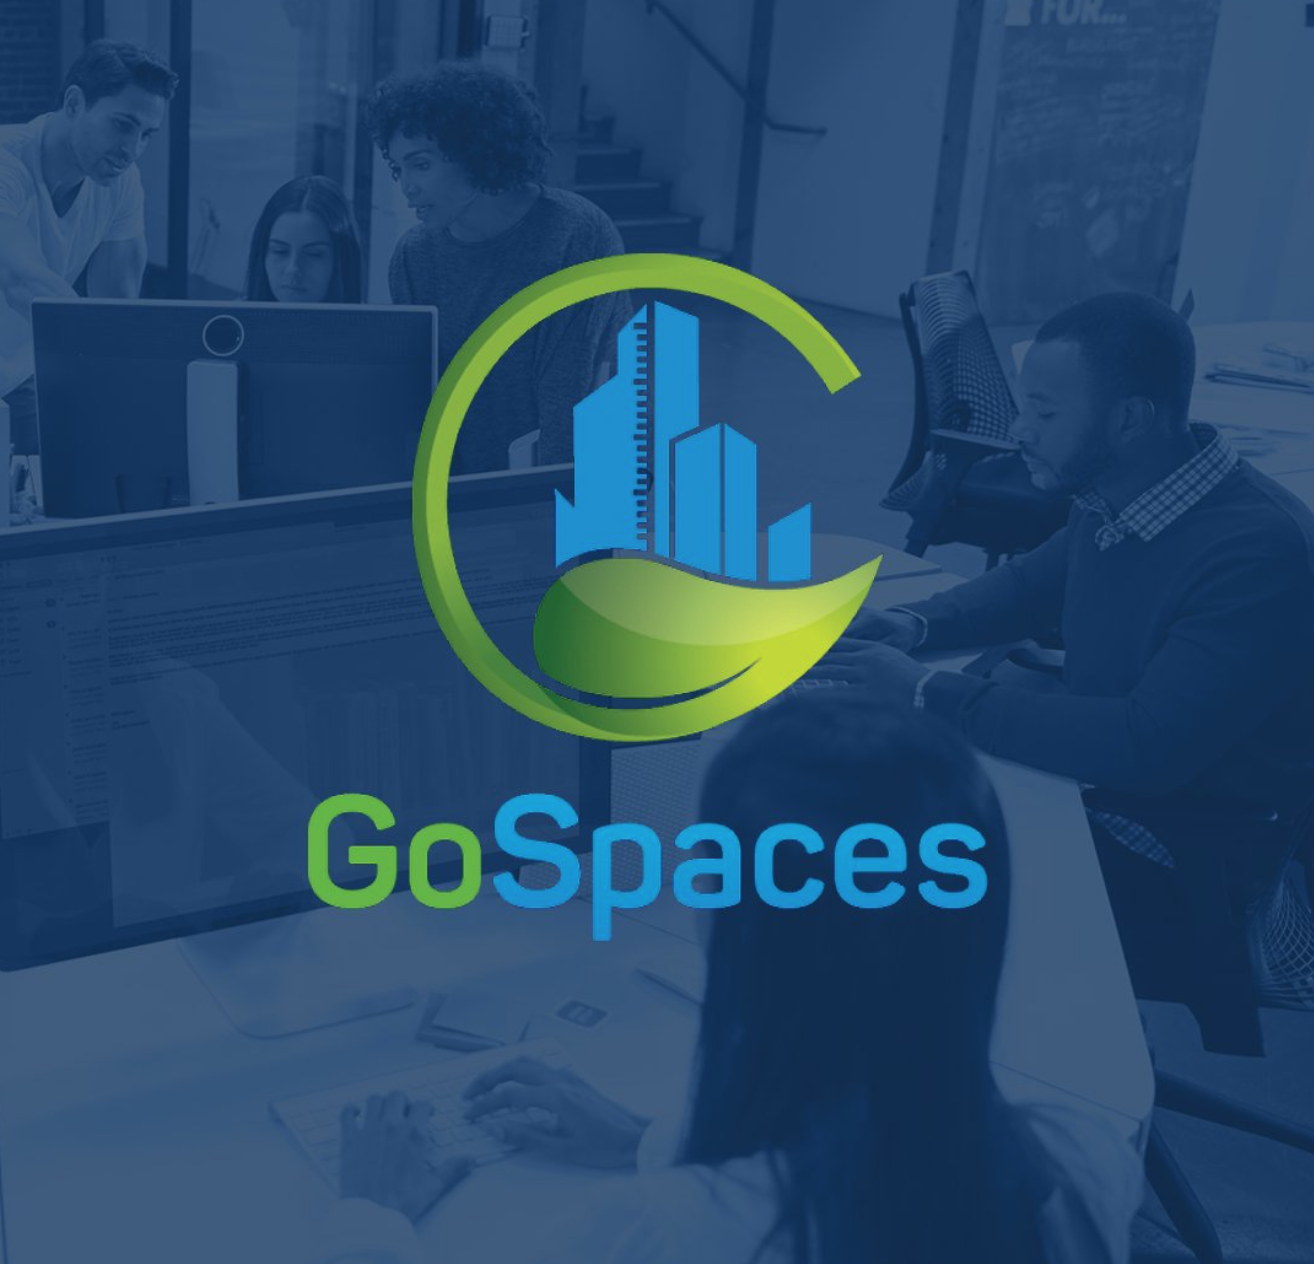 GoSpaces and Deloitte Provide a Leading Mobile Solution to Enable Return to Work Plans and Ongoing Support